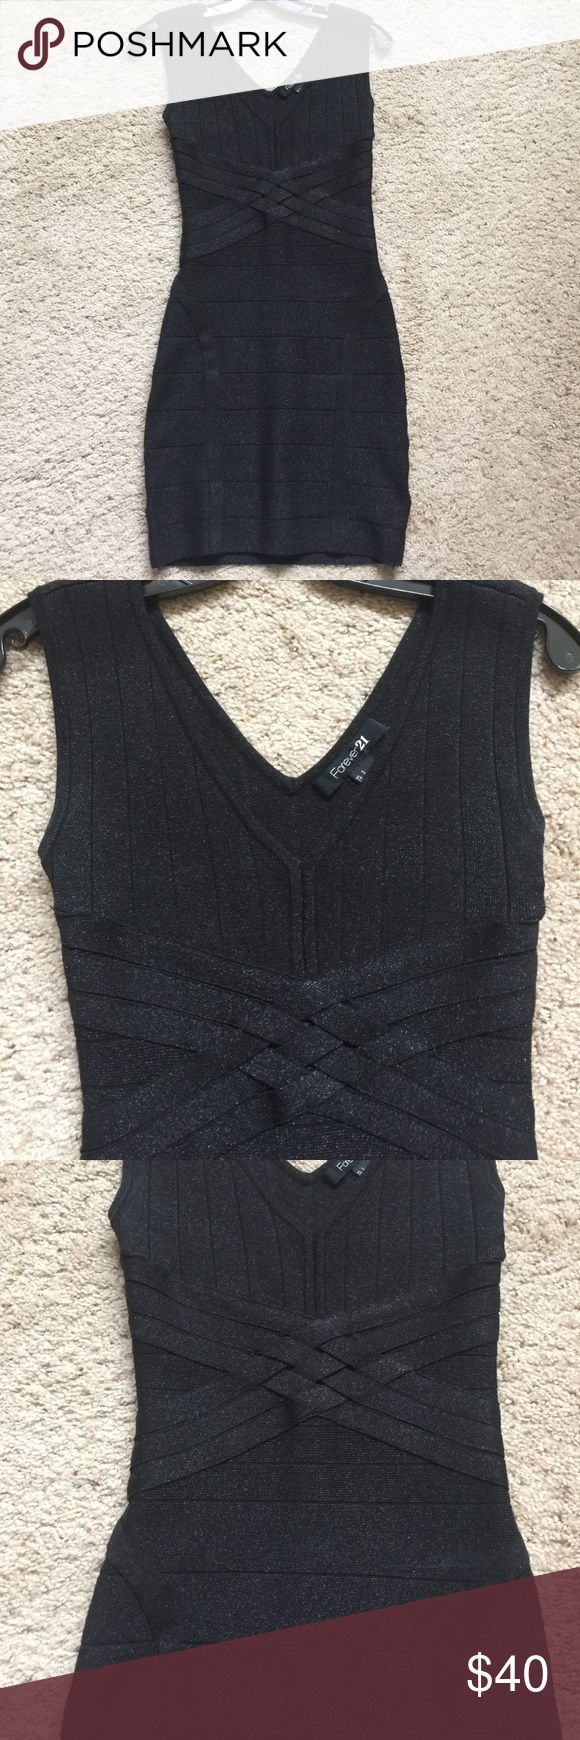 SUPER sexy little black dress NWOT Sz S Very sexy NWOT Lil black dress Sz S - side zip- details on front and back very figure flattering- slight metallic finish Forever 21 Dresses Mini